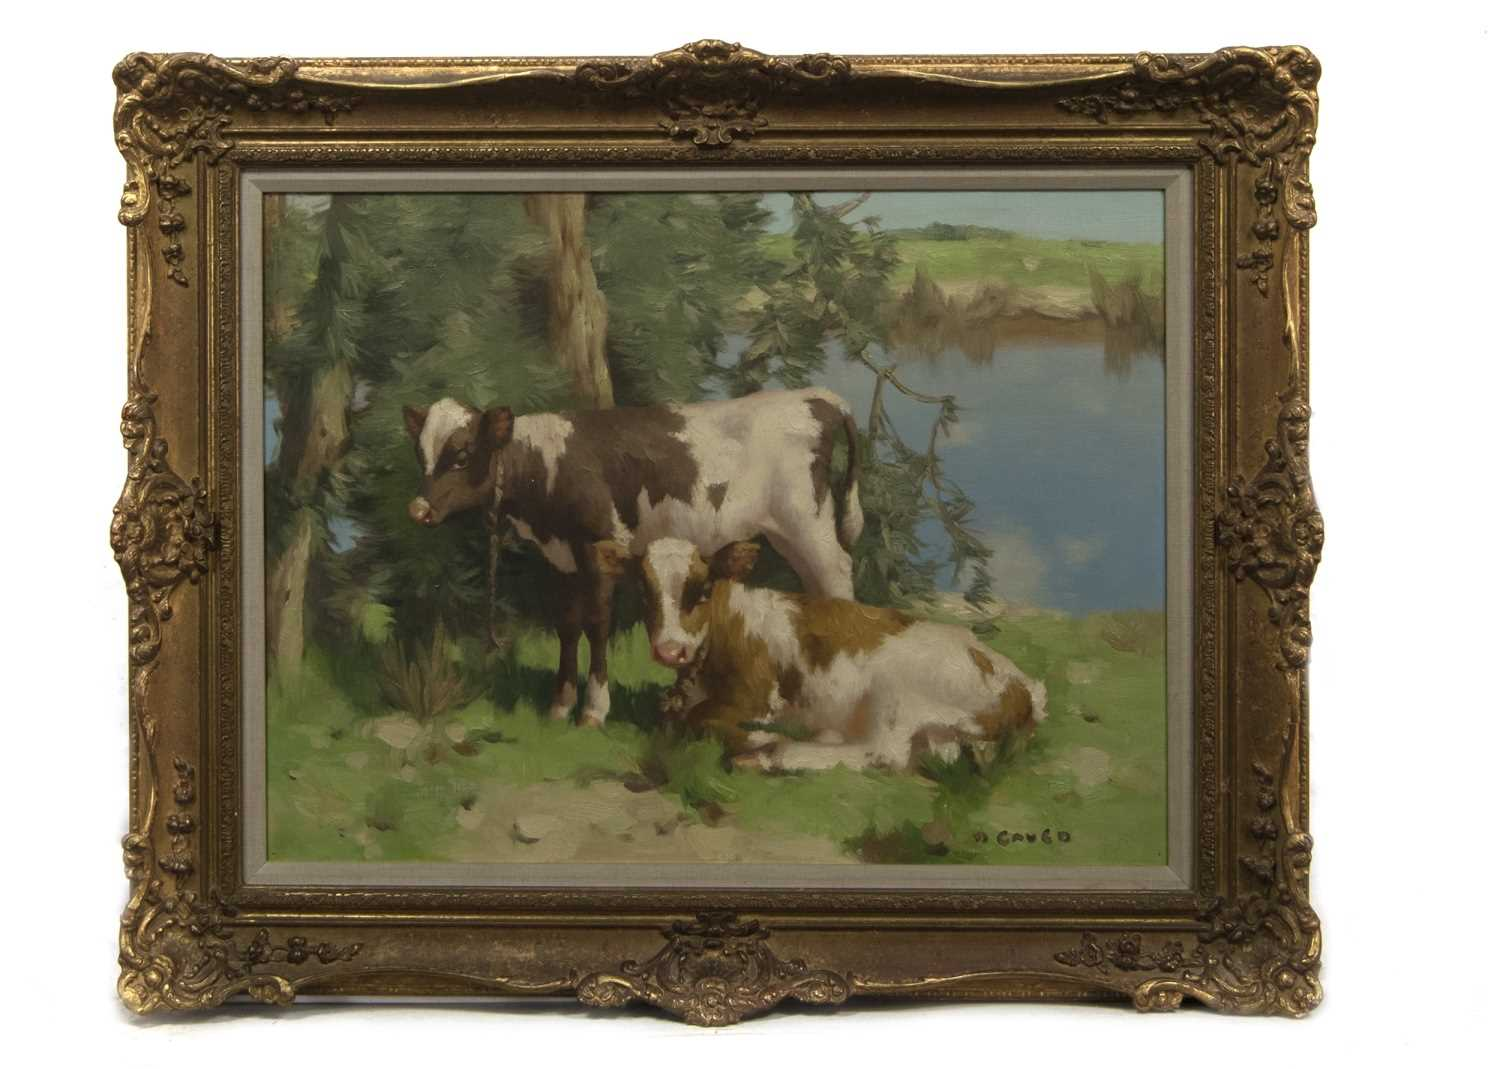 Lot 2001 - A CORNER OF THE SOLWAY, AN OIL BY DAVID GAULD